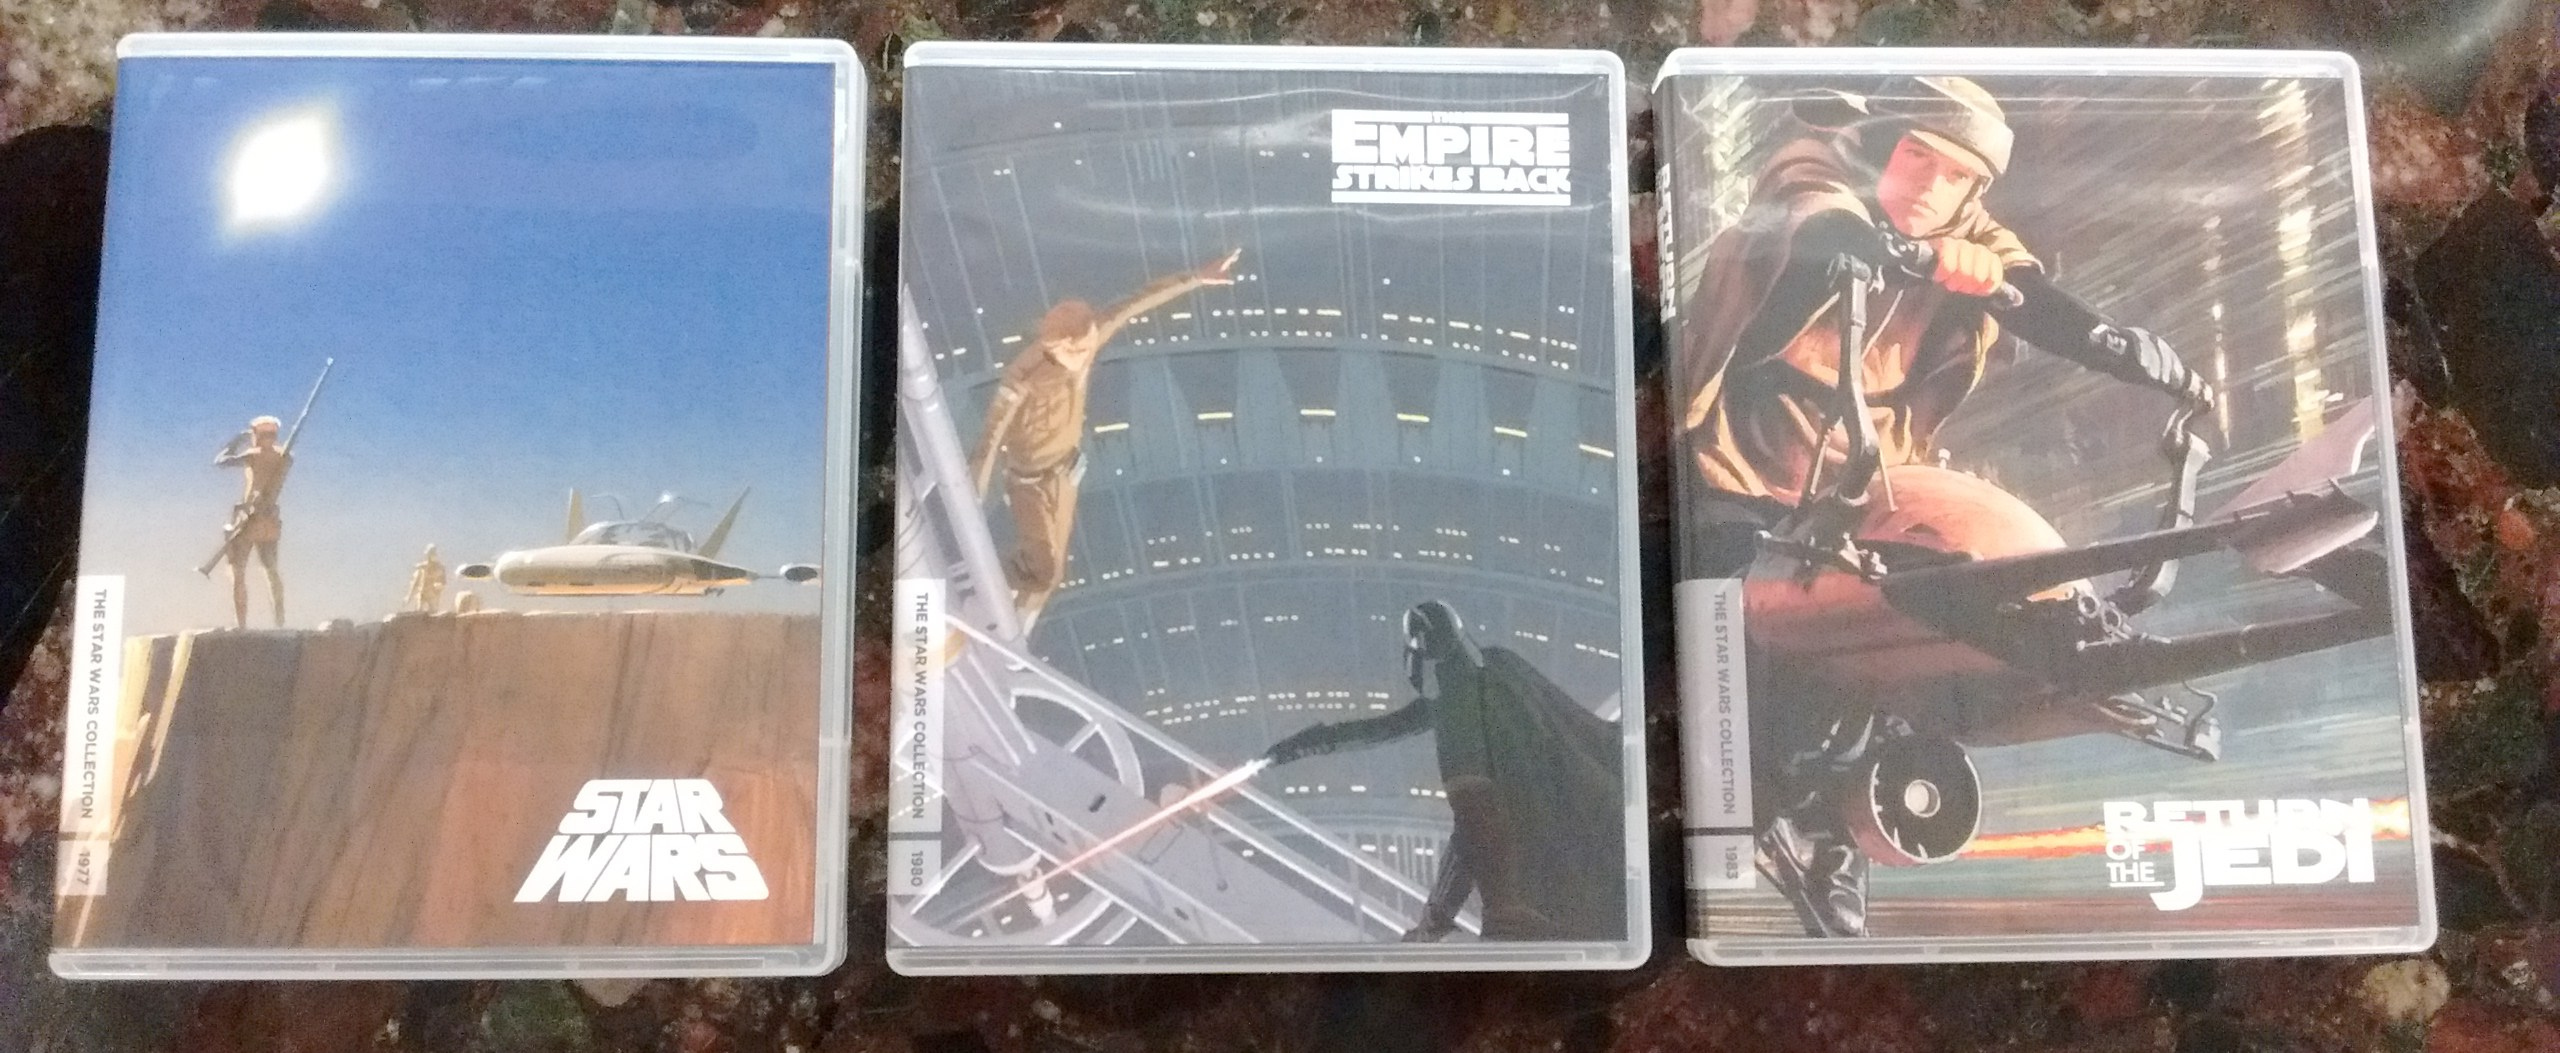 Print Your Own 'Star Wars' Trilogy Blu-ray Covers with Ralph